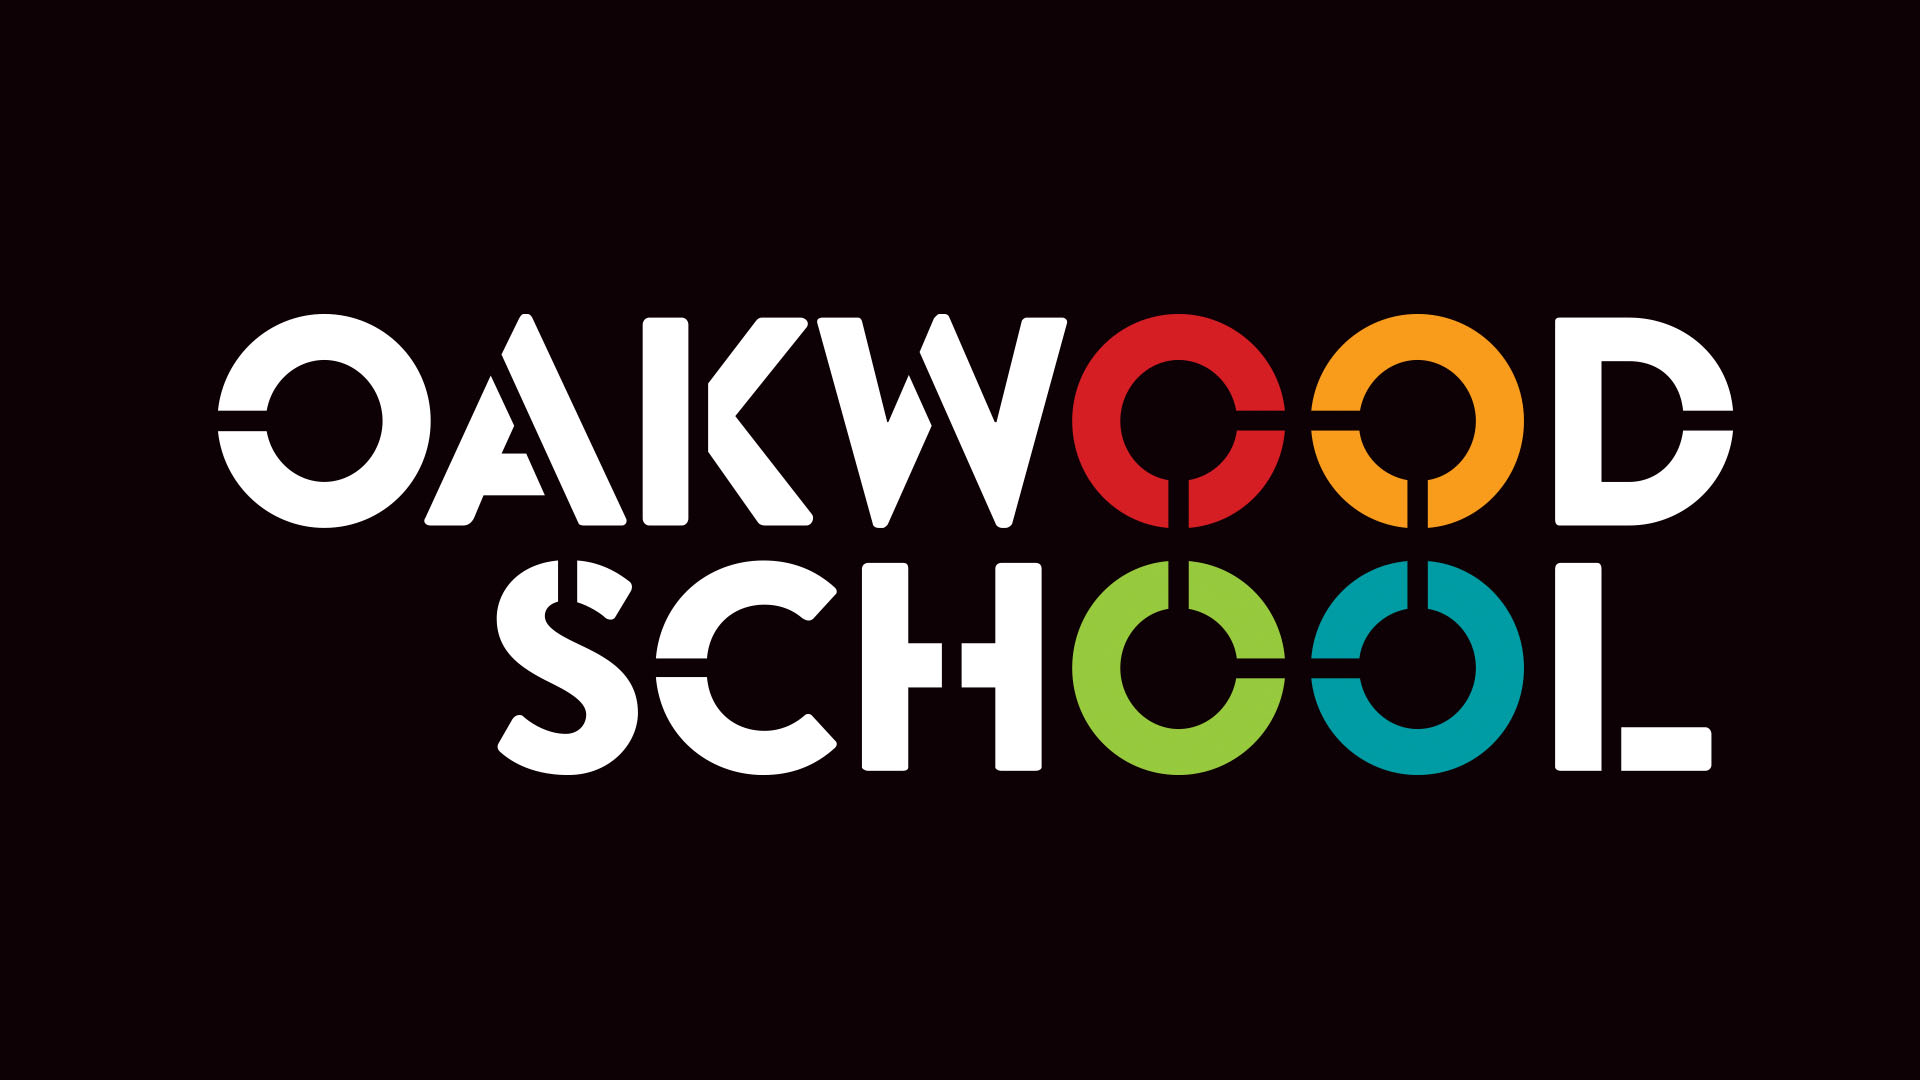 oakwood_logo_BLACK.jpg